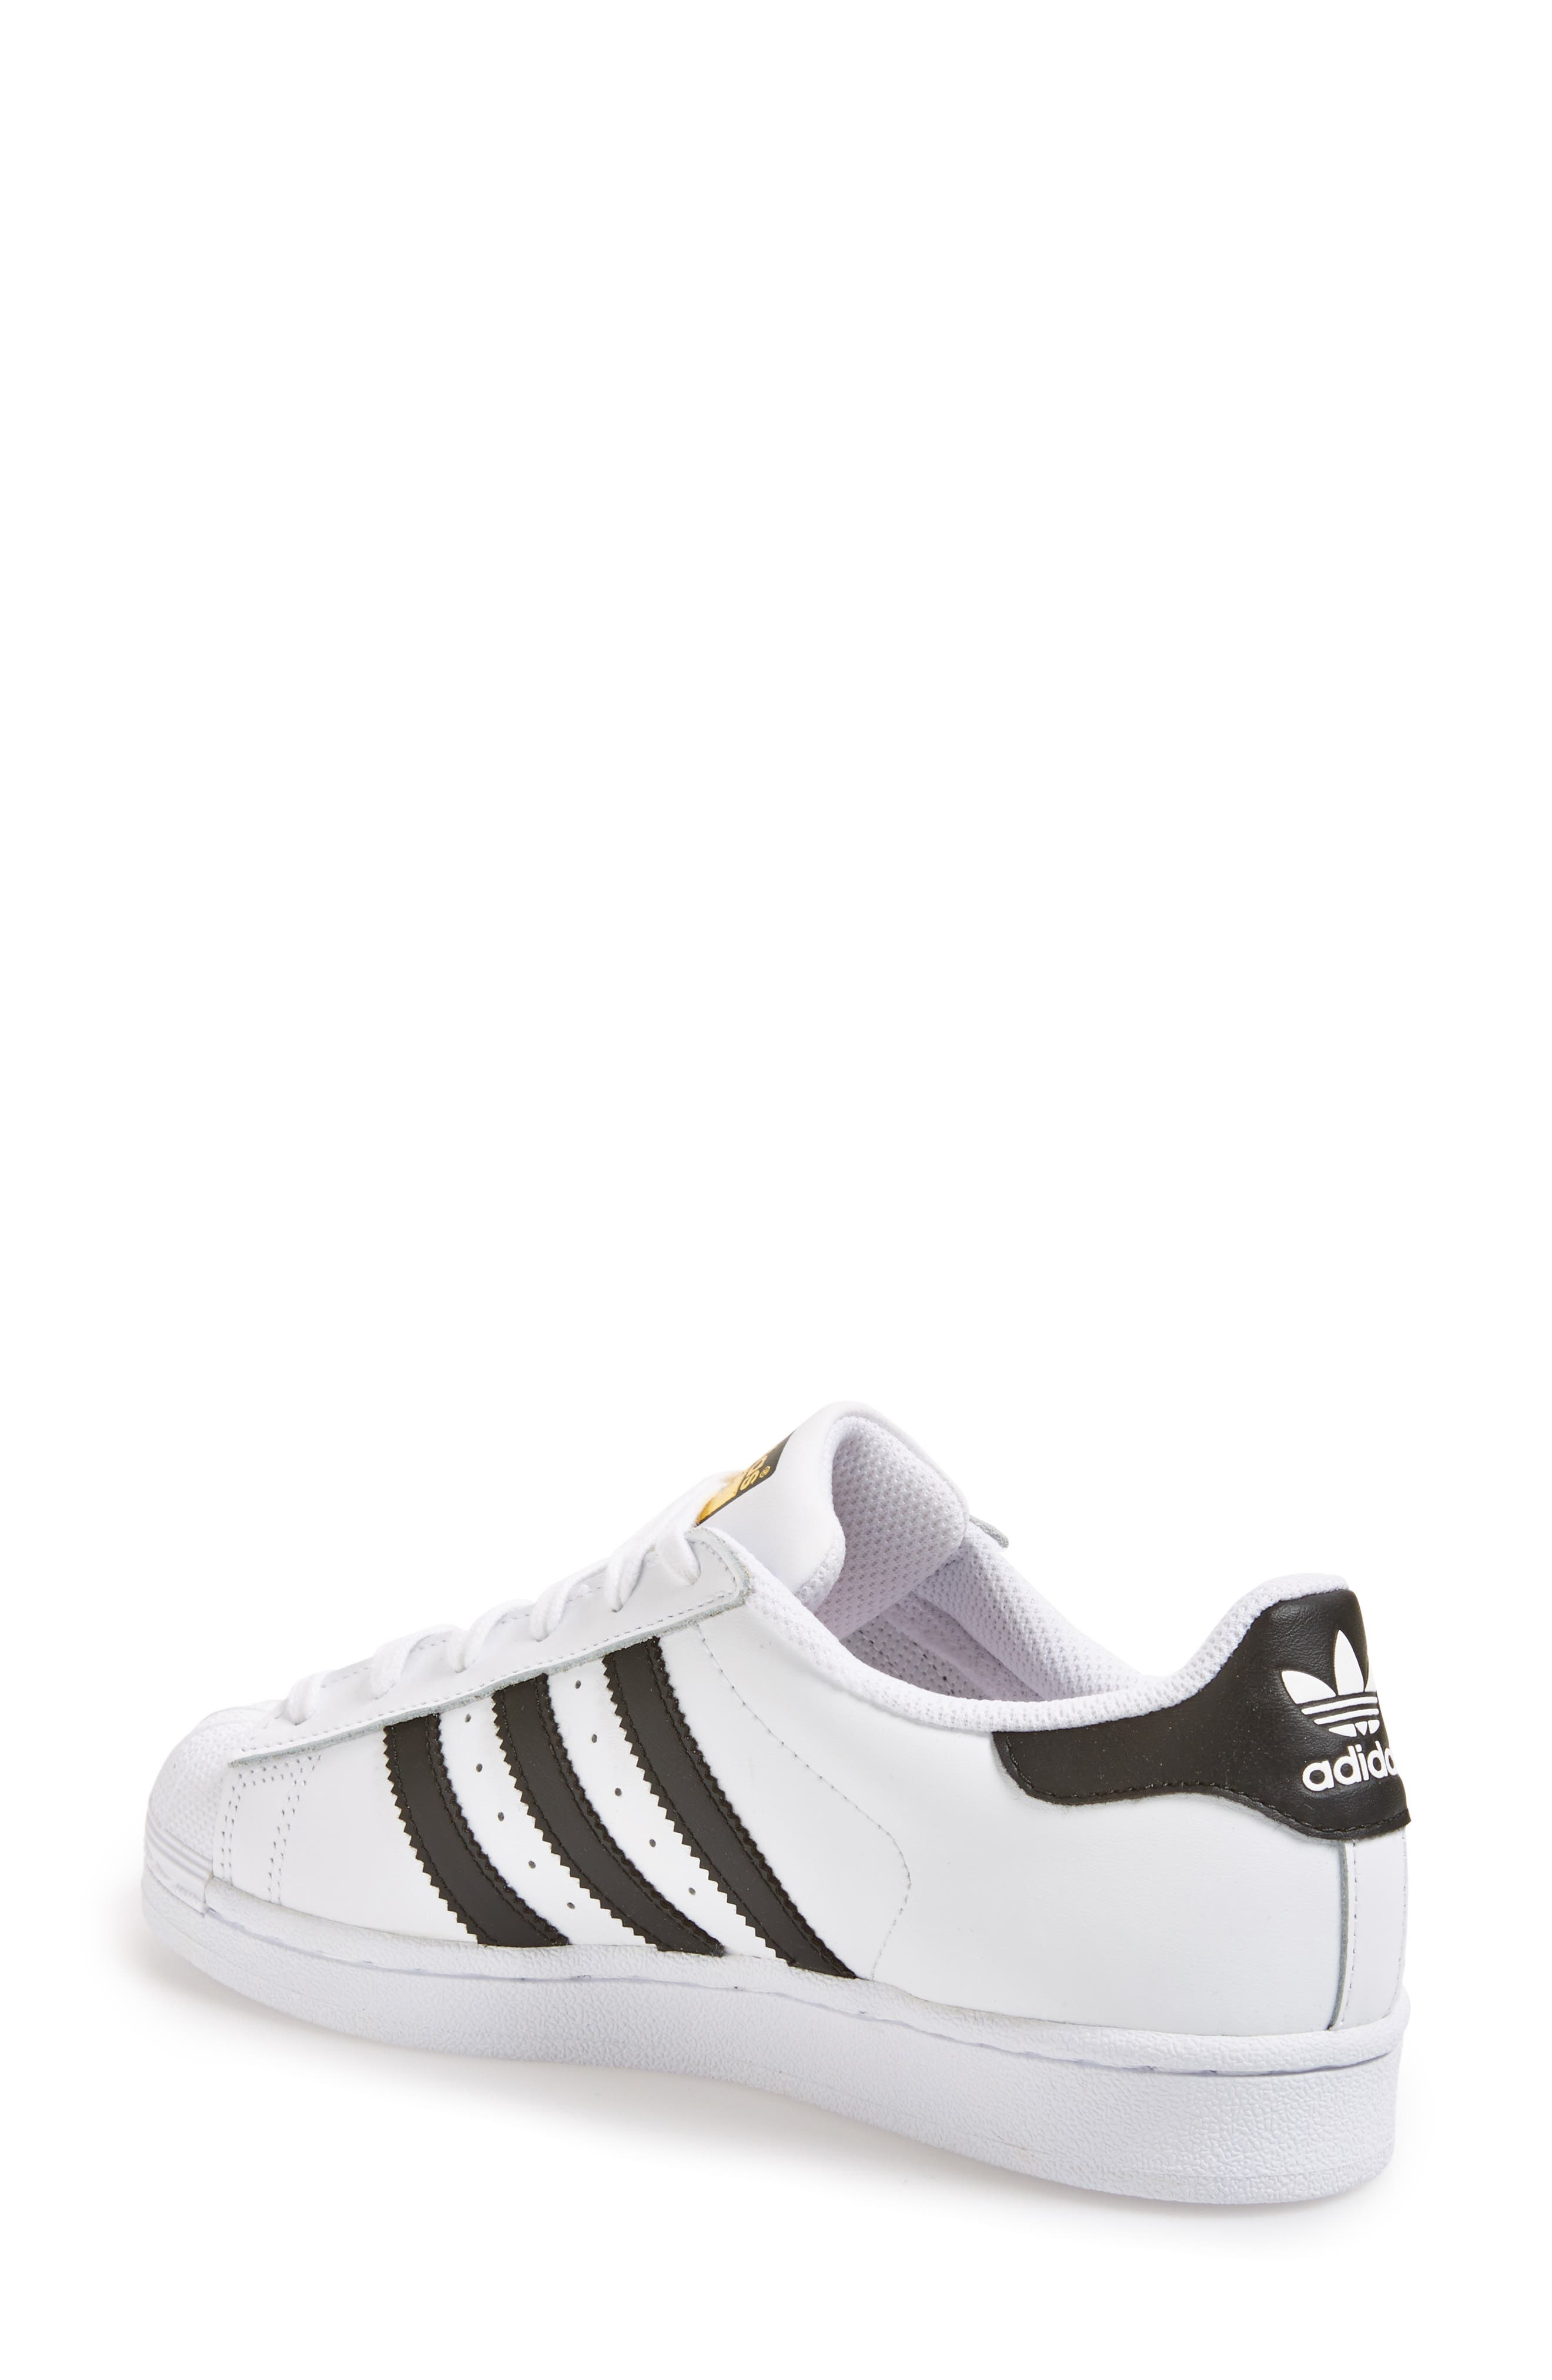 ADIDAS, Superstar Sneaker, Alternate thumbnail 2, color, WHITE/ BLACK